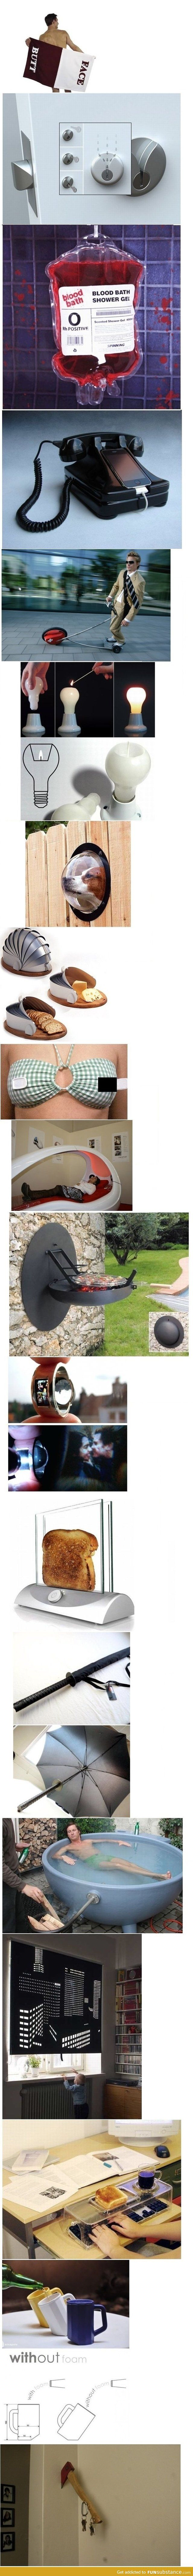 Best Invention Ideas Ideas On Pinterest Take My Money Used - 24 brilliant inventions every lazy person will love